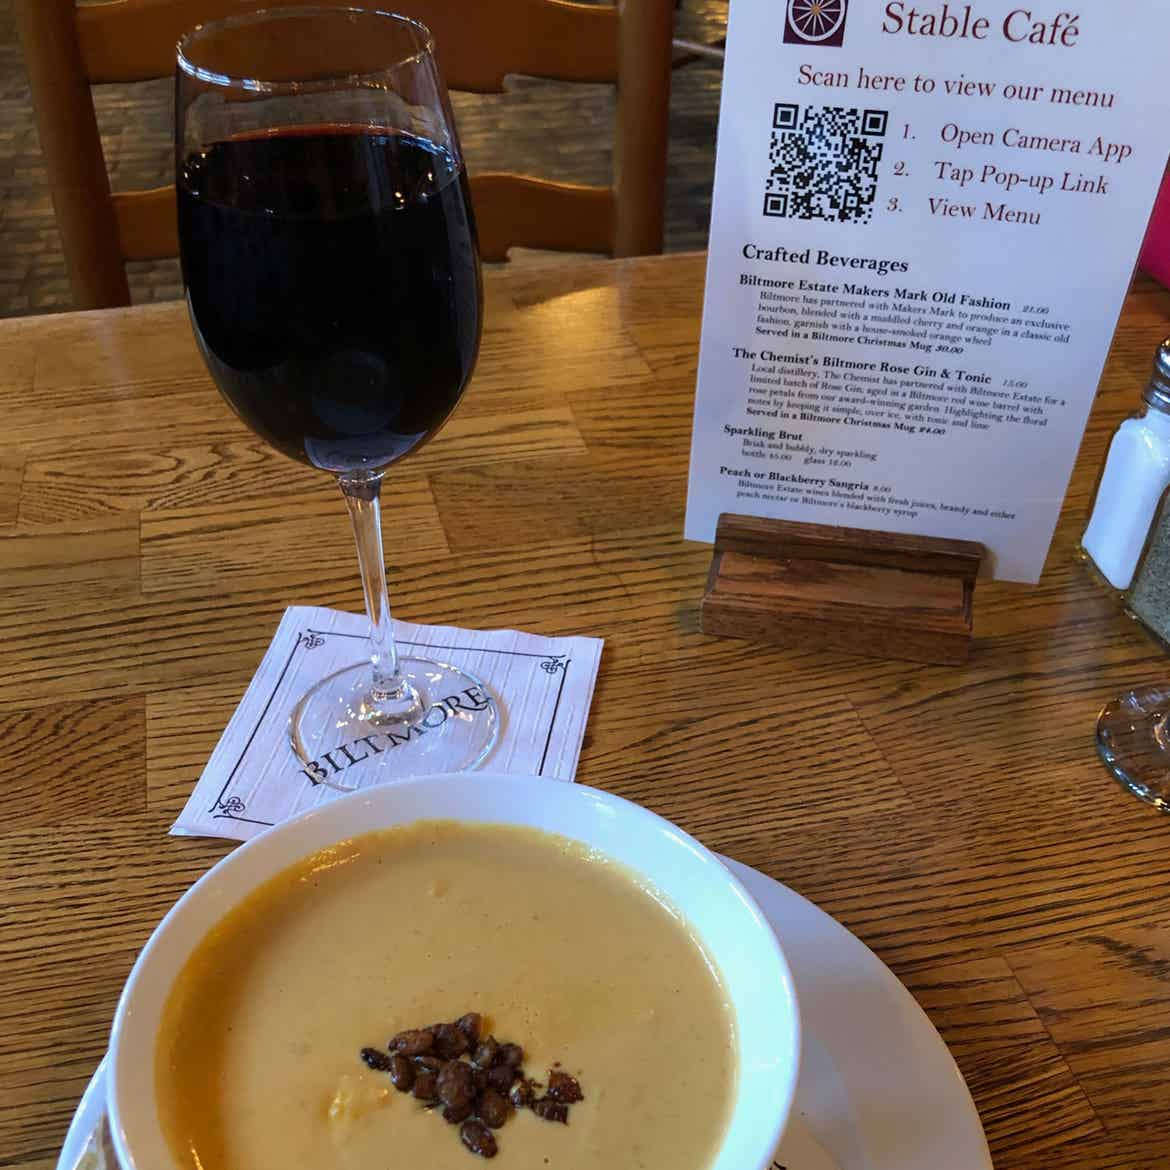 A glass of red wine and the pumpkin bisque are placed on a table near the QR menu at the Stable Cafe.